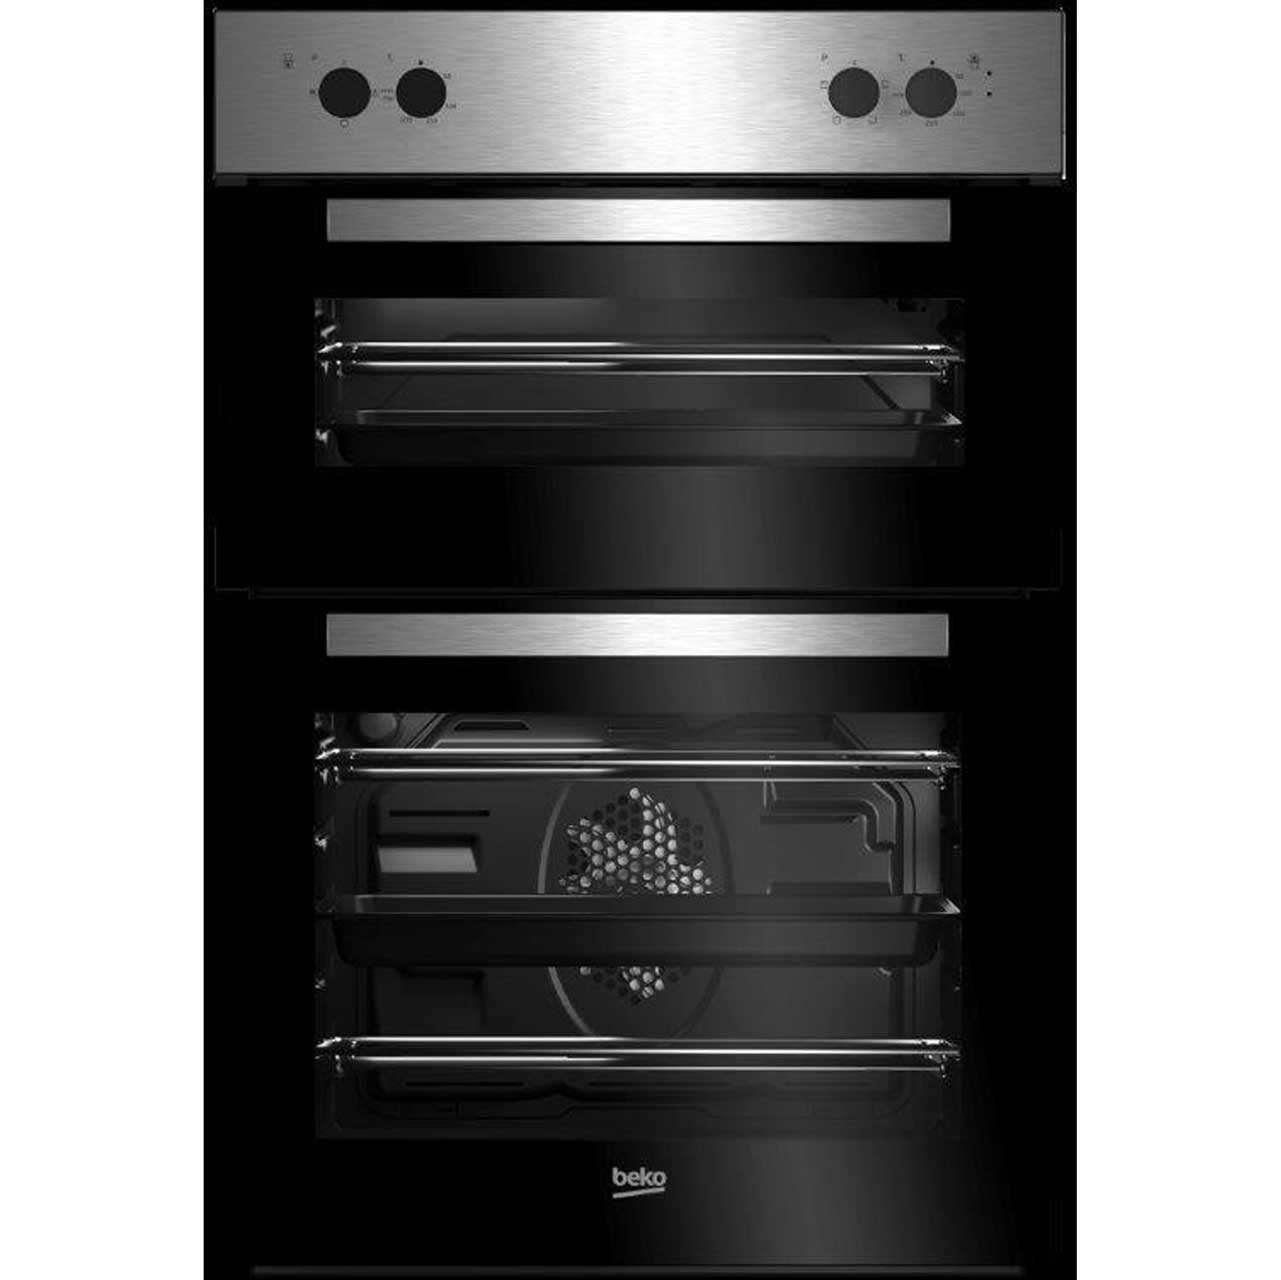 Beko Double Oven - Integrated - BRDF21000X - Stainless Steel